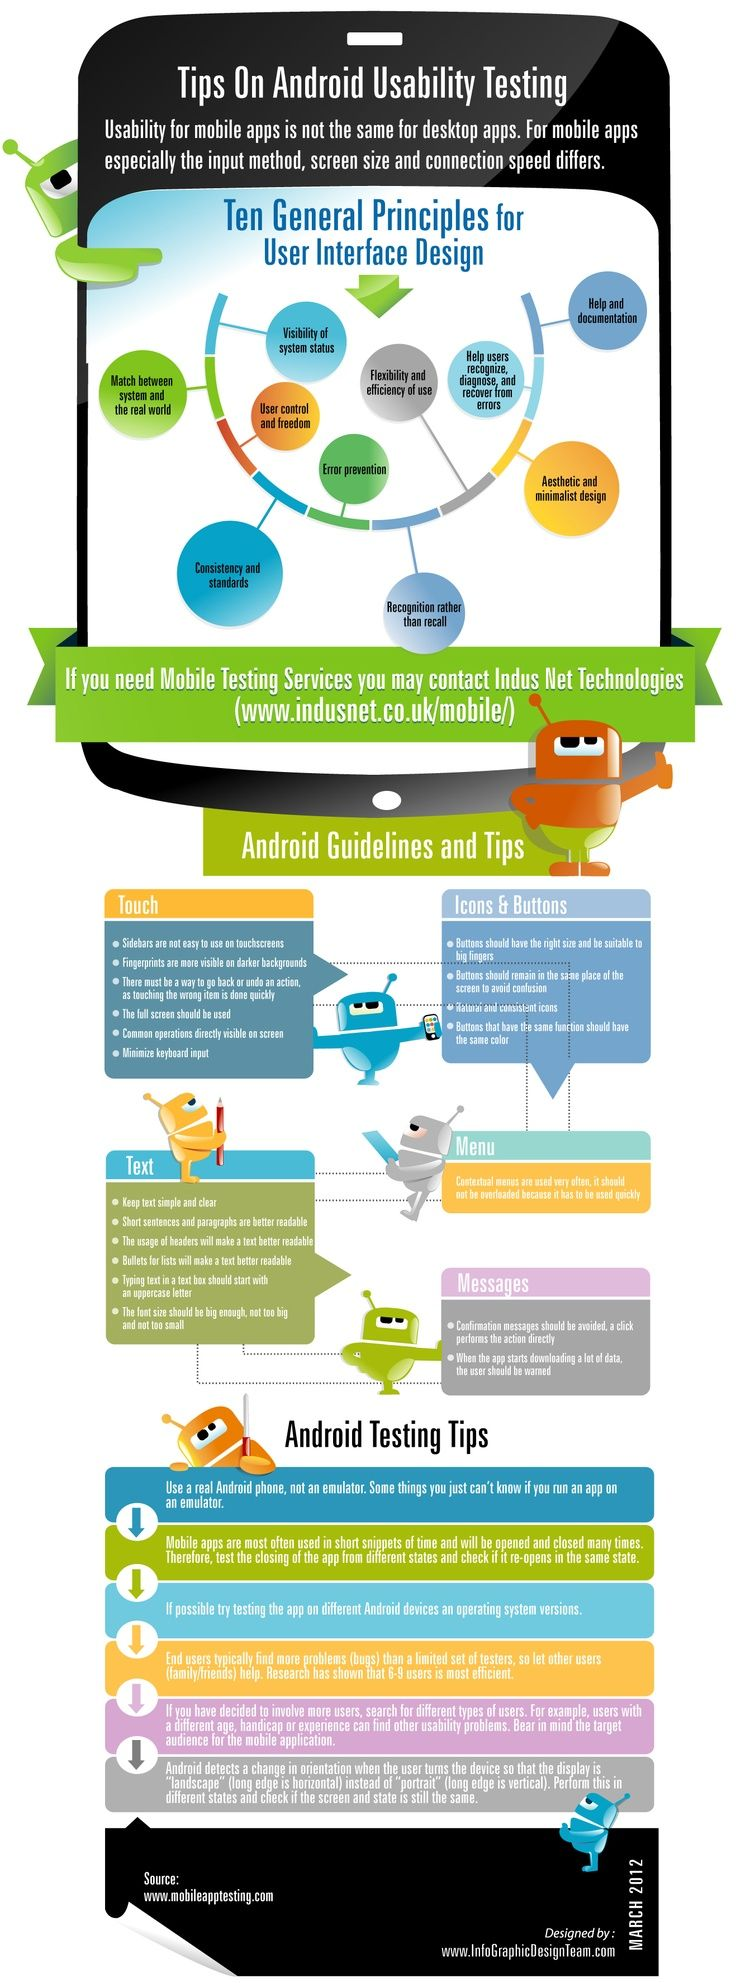 Fruitful Tips on #AndroidApp Usability Testing: http://bit.ly/1g8Pinw